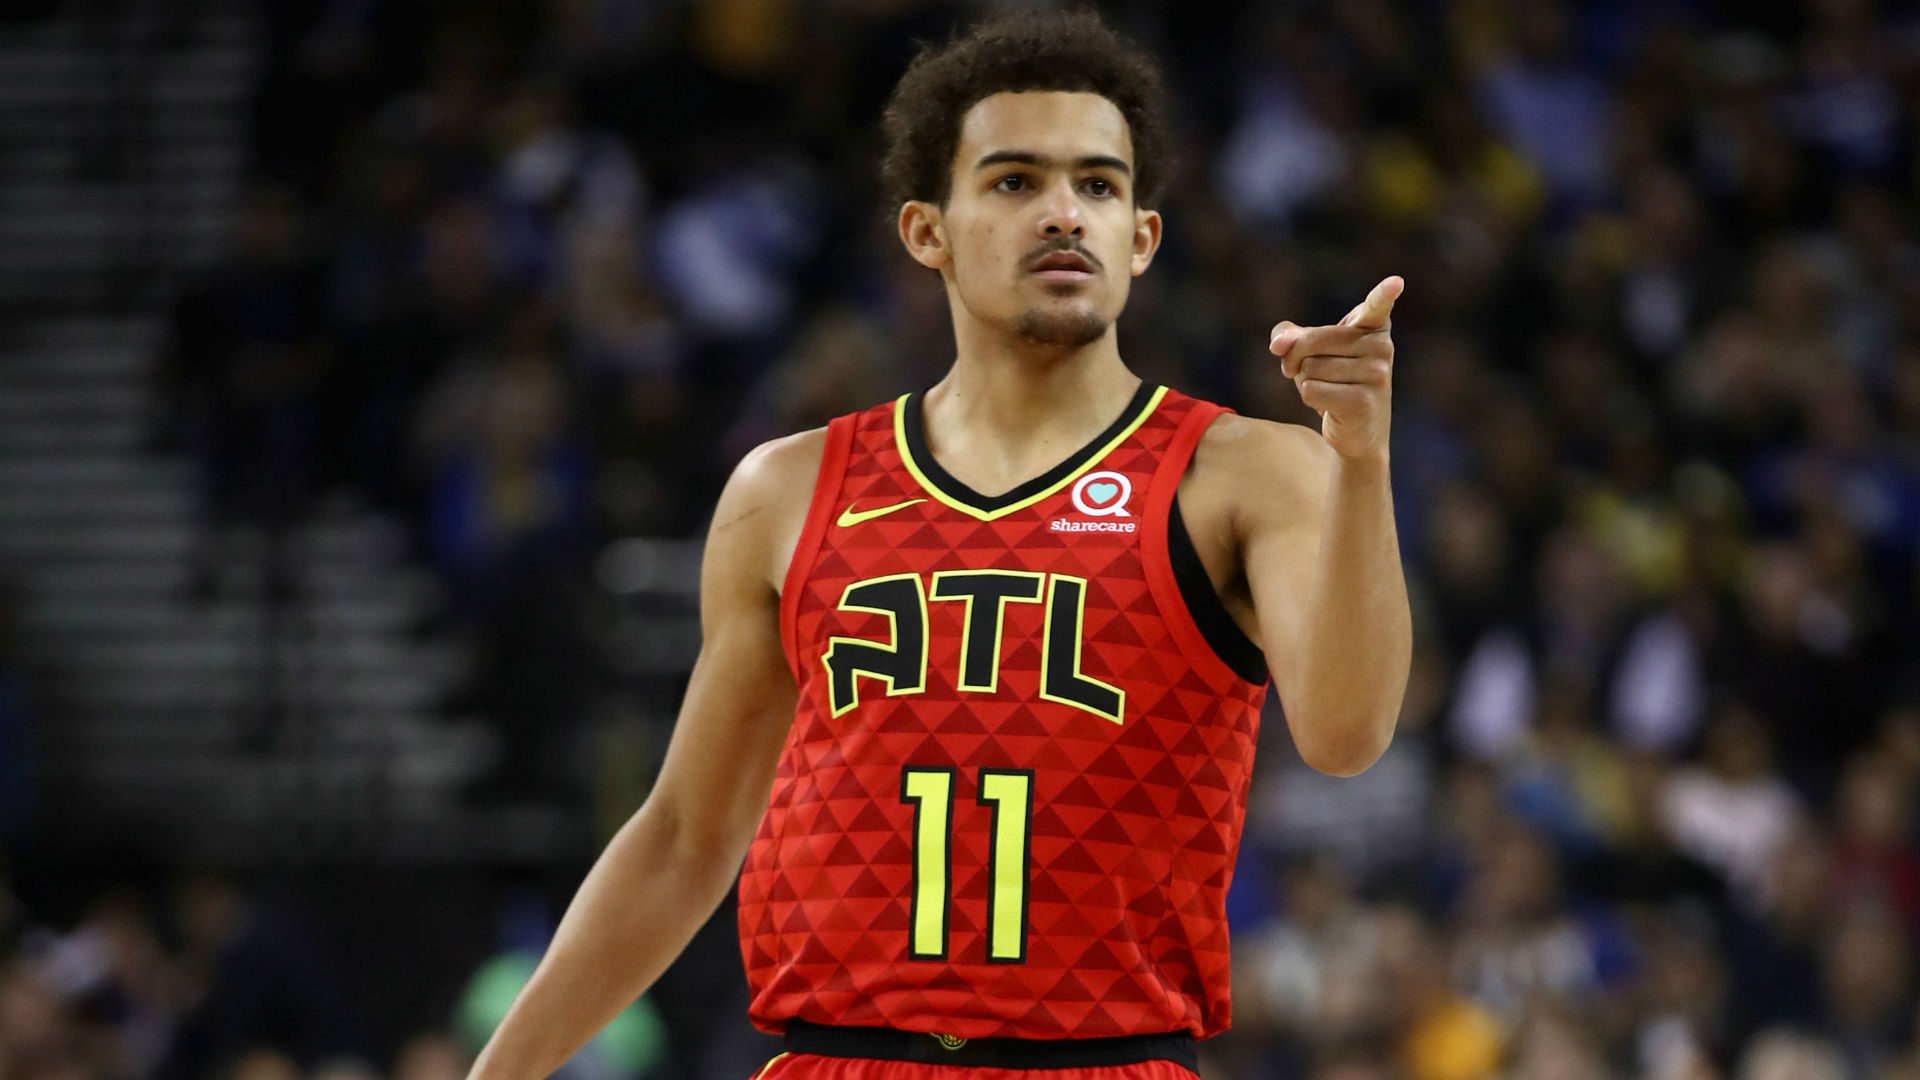 Young makes improbable game-winner as Hawks take down Bucks